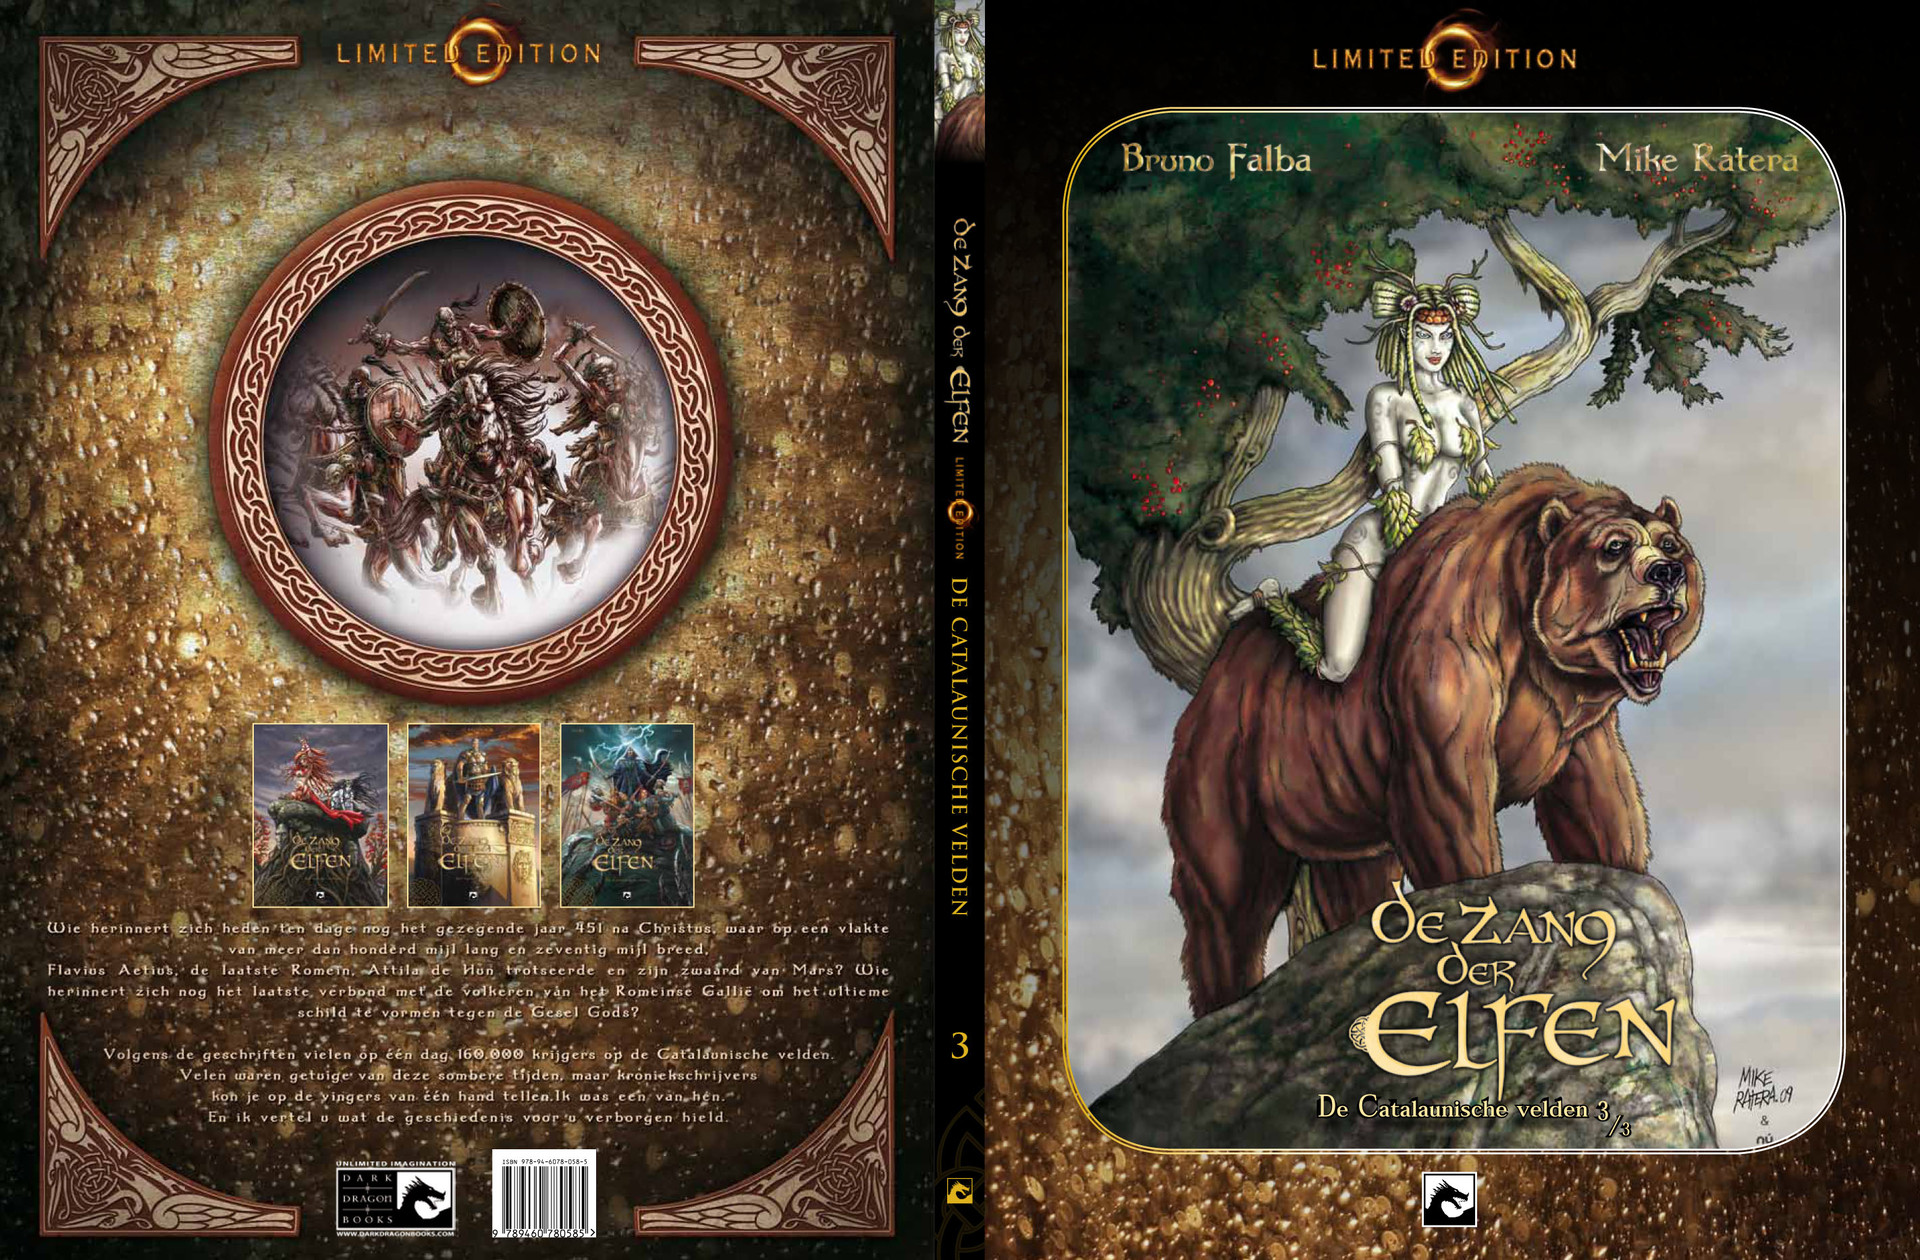 Mike ratera zang der elfen t3 limited edition cover